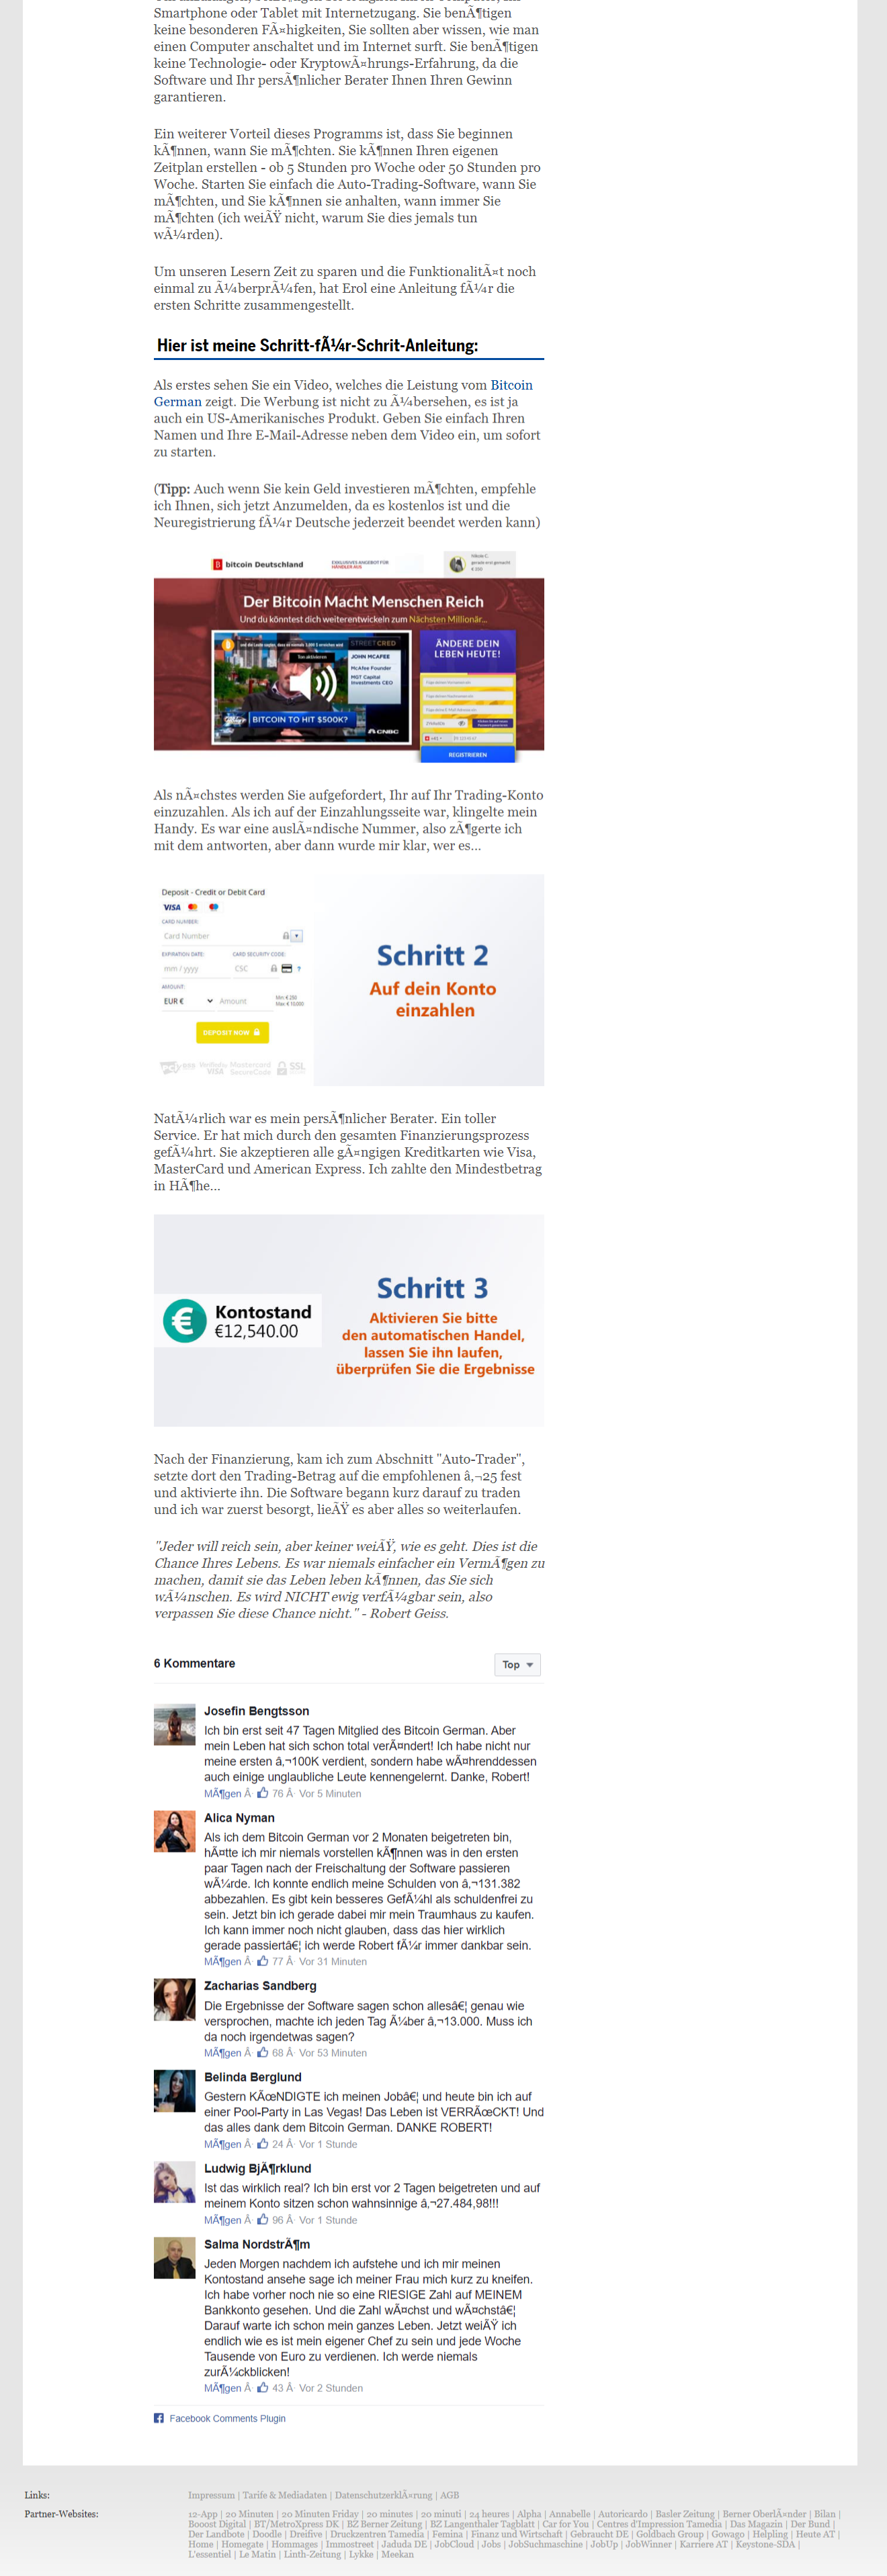 screenshot-worldnewstoday.site-2020.10.20-16_58_38-neu2.png